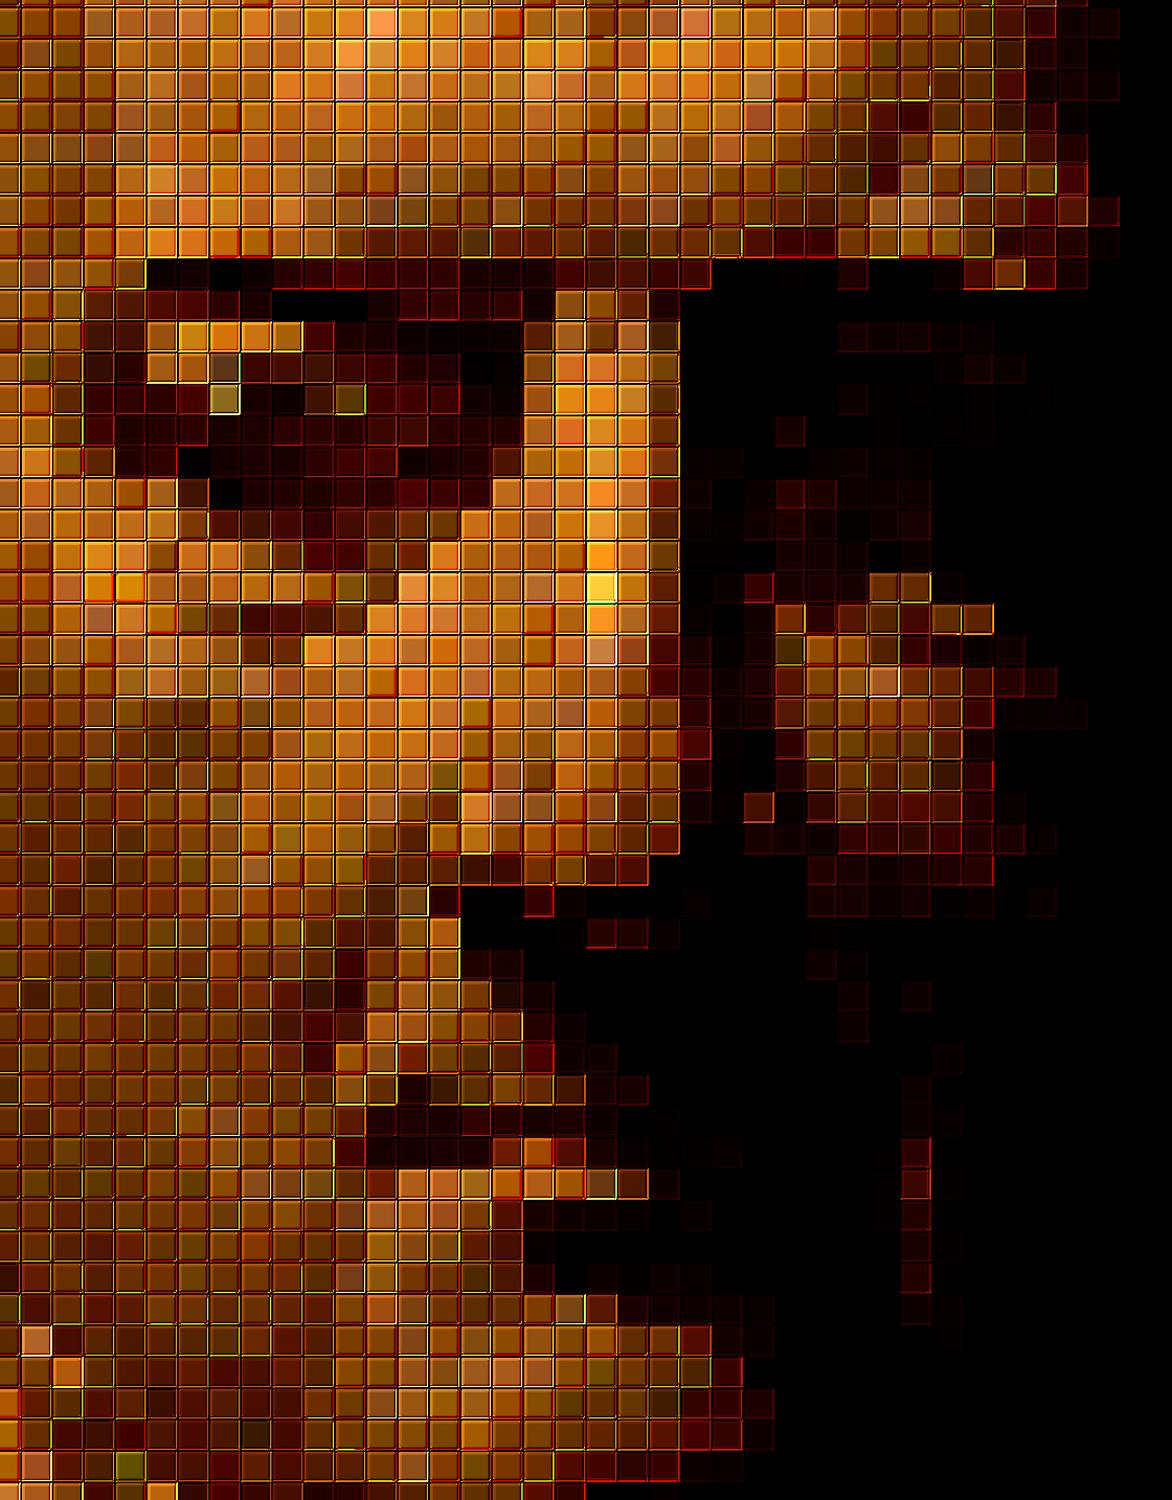 brown Portrait in small mosaic tiles - Portrait in small mosaic tiles - Techno-Impressionist Museum - Techno-Impressionism - art - beautiful - photo photography picture - by Tony Karp